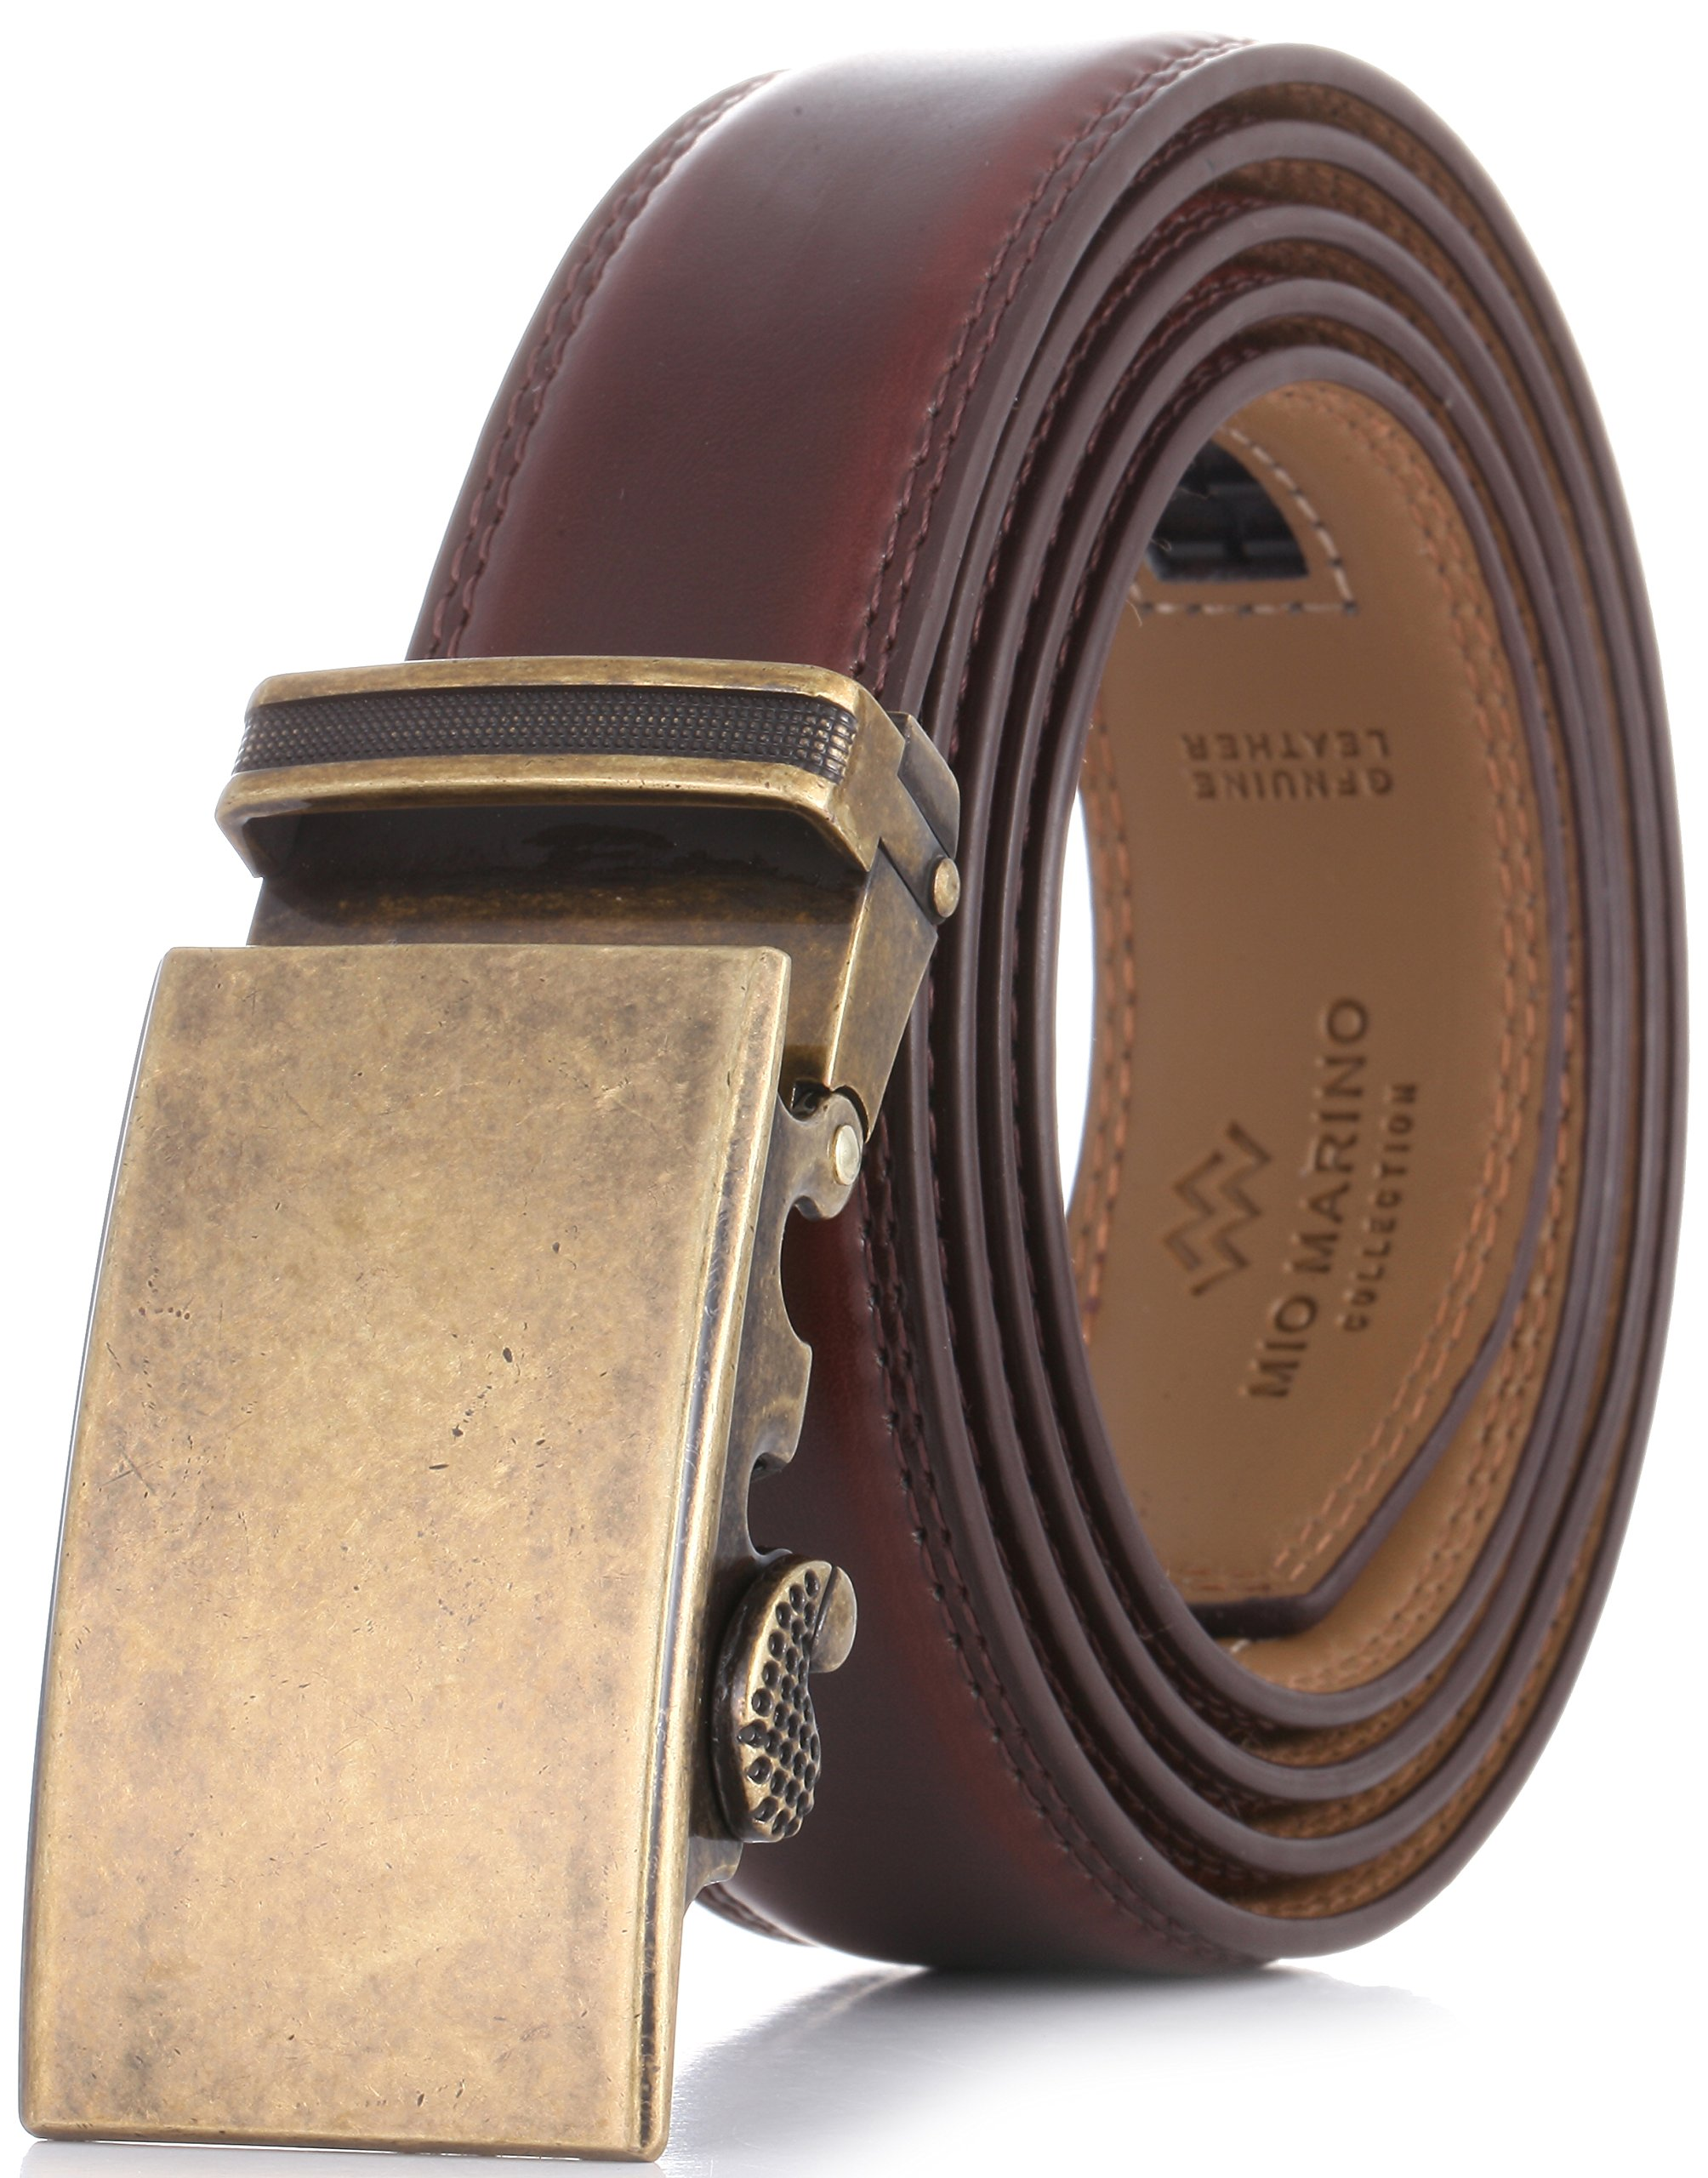 Marino Men's Genuine Leather Ratchet Dress Belt With Automatic Buckle, Enclosed in an Elegant Gift Box - Mahogany - Adjustable from 28'' to 44'' Waist by Marino Avenue